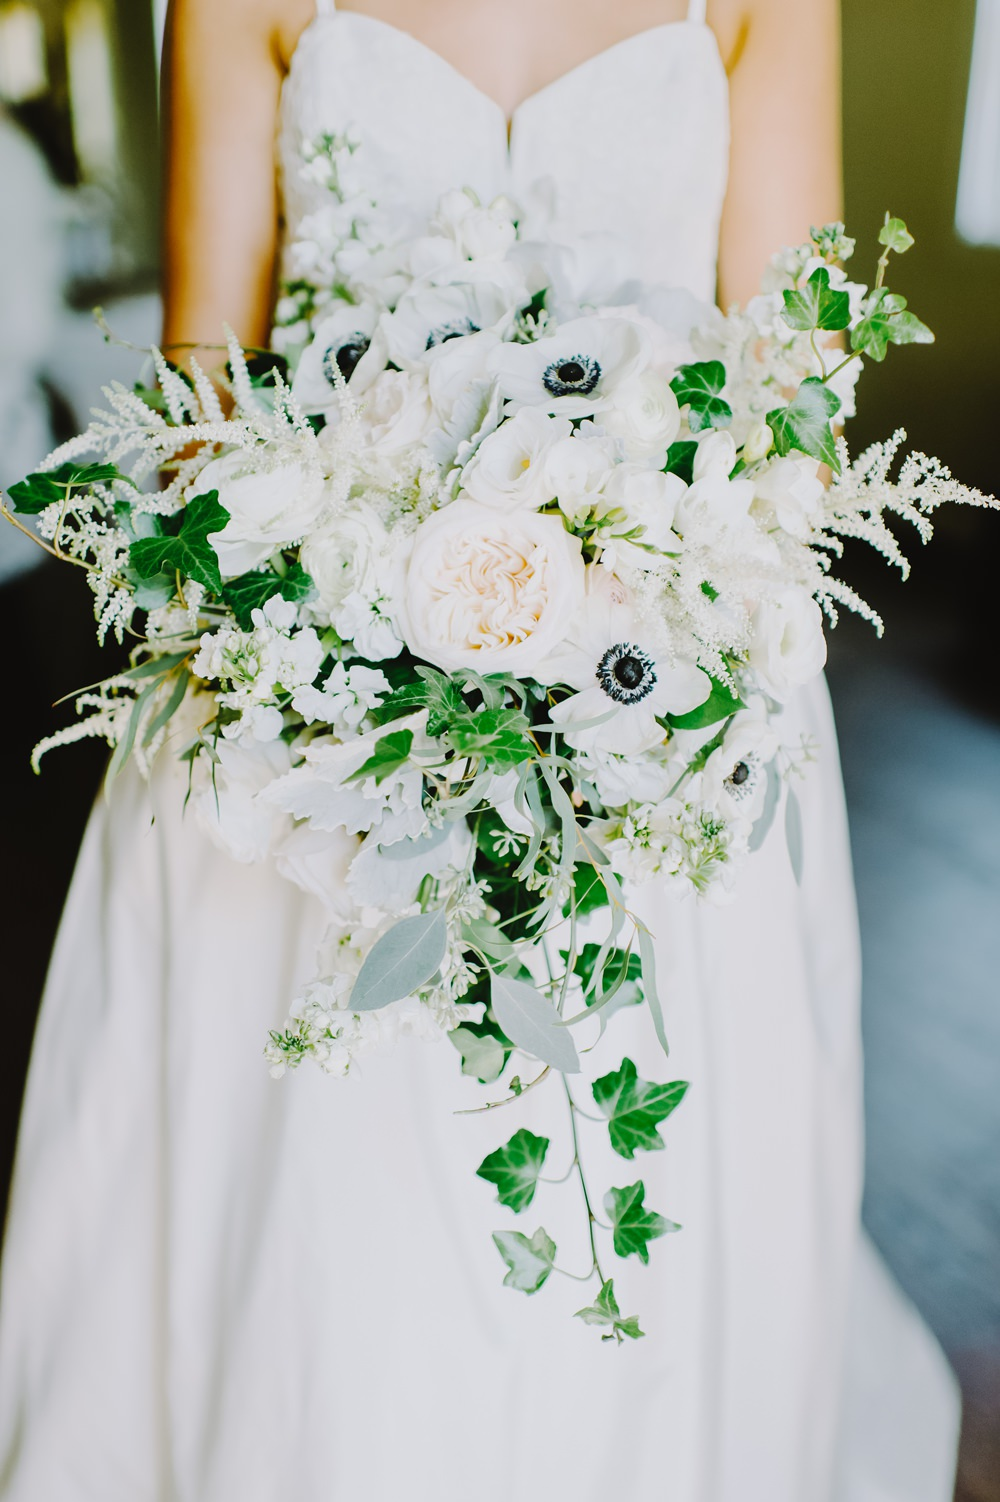 Bride Bridal Bouquet Flowers Peony Astilbe Ivy Anemone Maryland Wedding L. Hewitt Photography